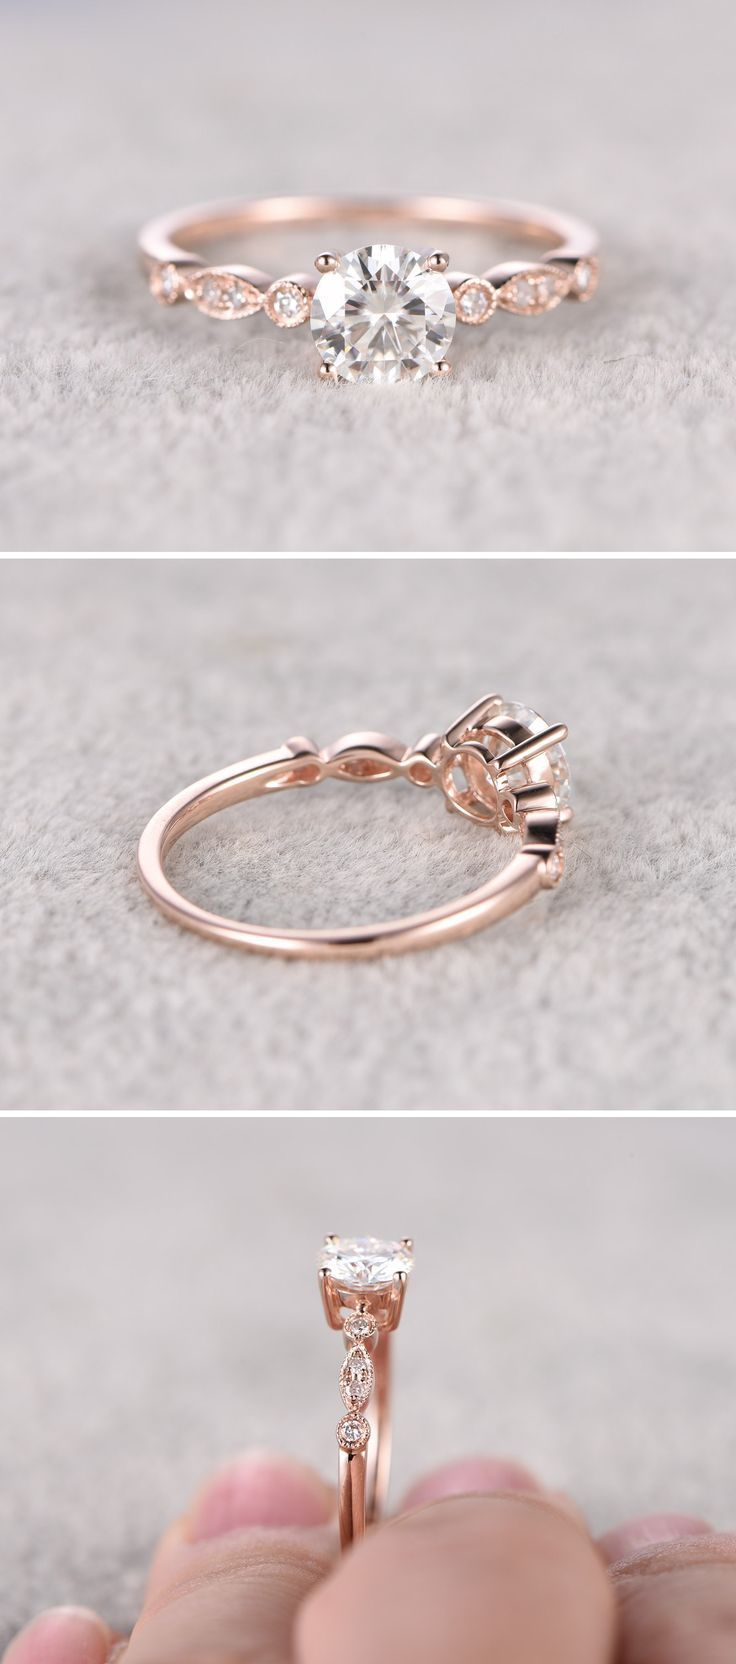 Awesome Moissanite In Rose Gold Engagement Ring Www Pinterest Com Unique Engagement Rings Rose Gold Engagement Ring Gold Engagement Rings